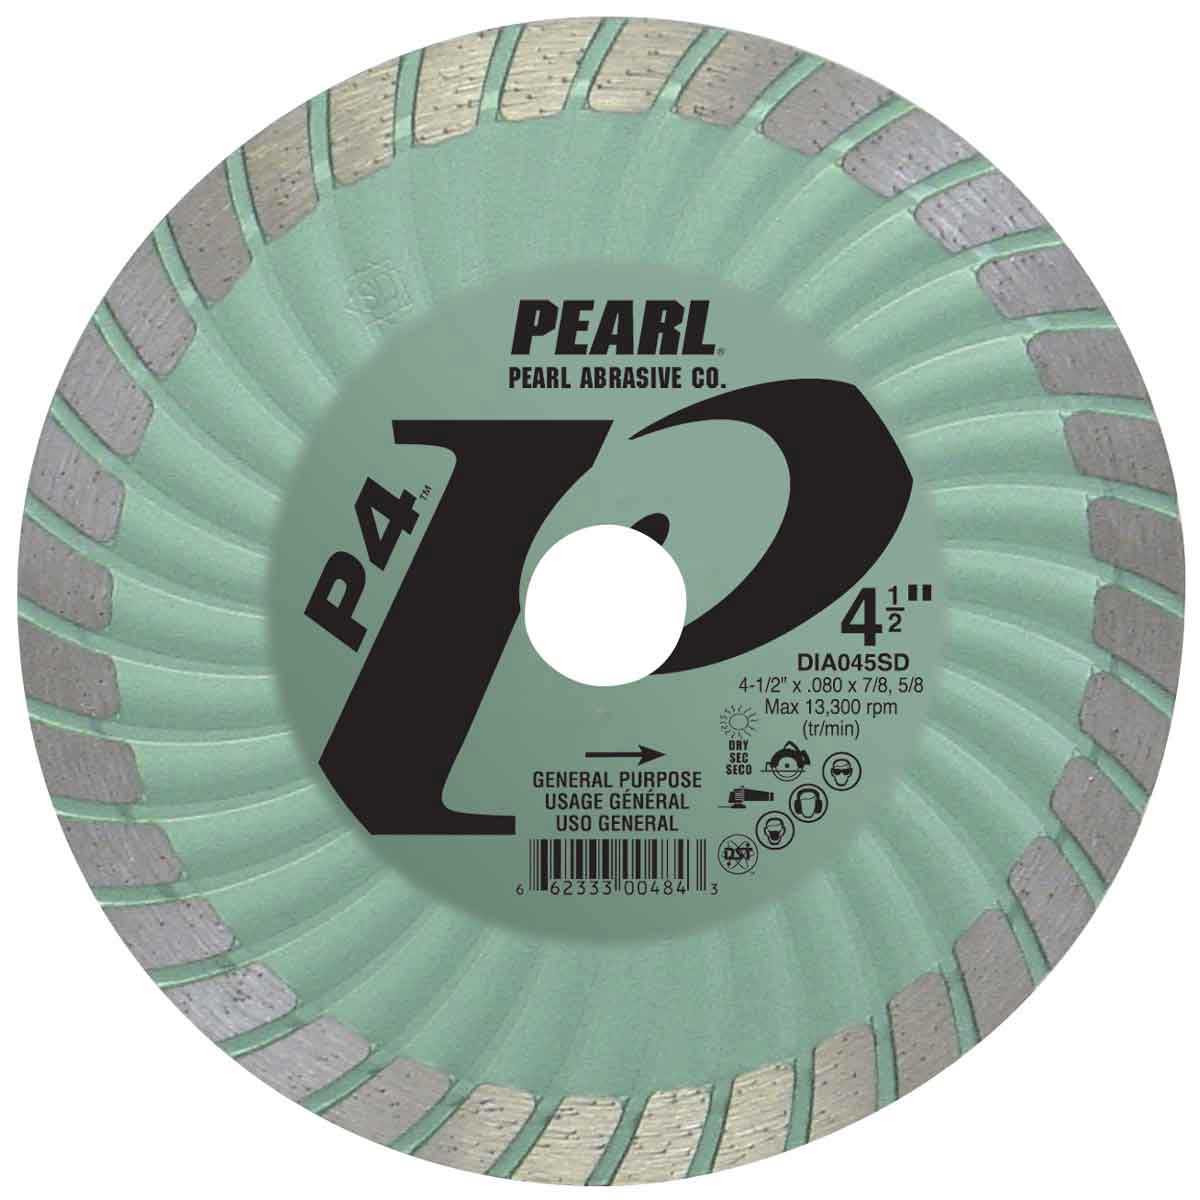 pearl sd 4 1/2in dry cutting turbo diamond blade